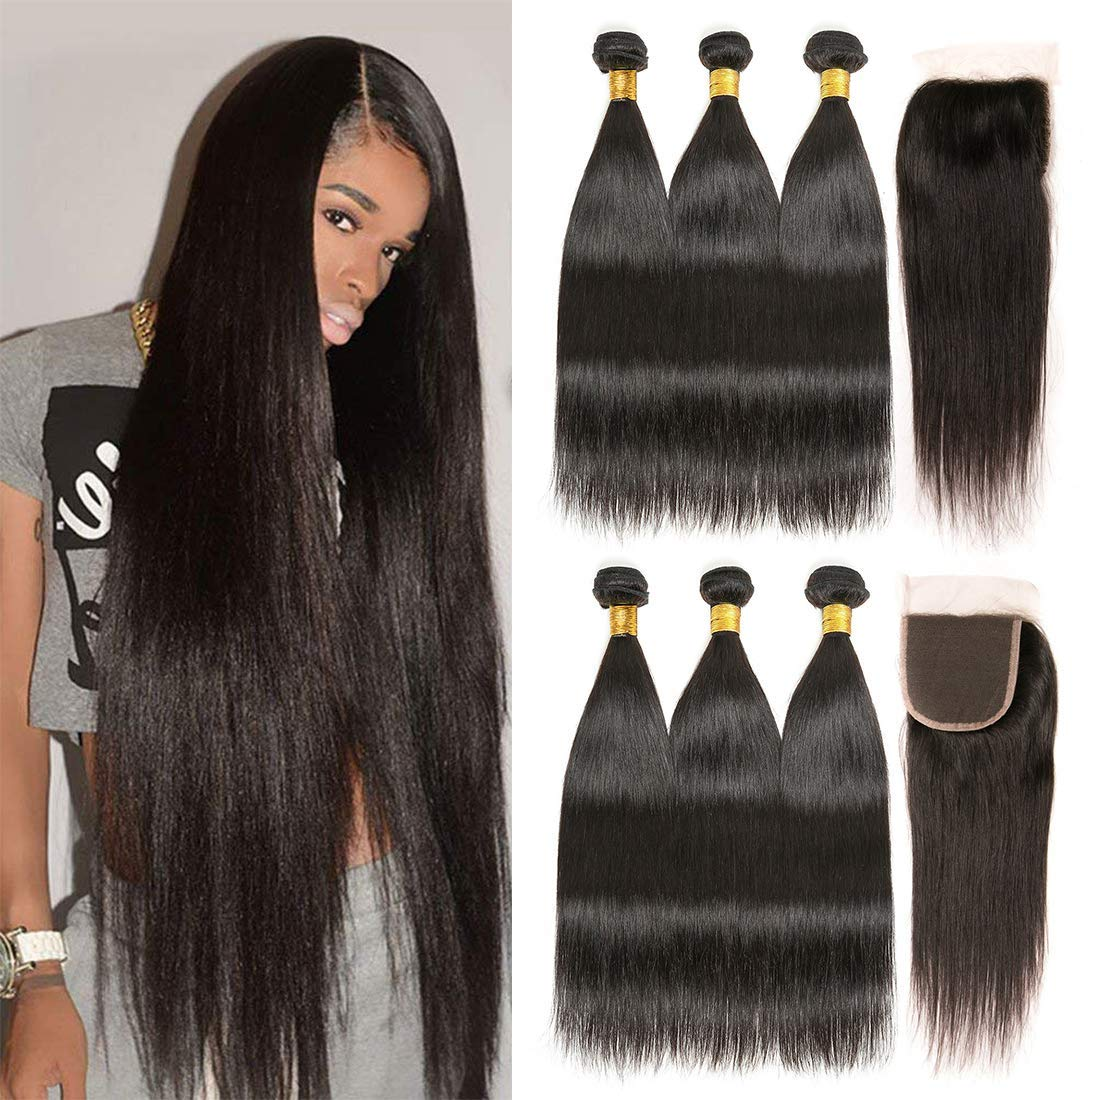 Brazilian Straight Hair 3 Bundles With Closure 8A 100% Unprocessed Virgin Brazilian Human Hair Weave Weft With 4×4 Lace Closure Natural Black Color (18 20 22+16, Free Part)